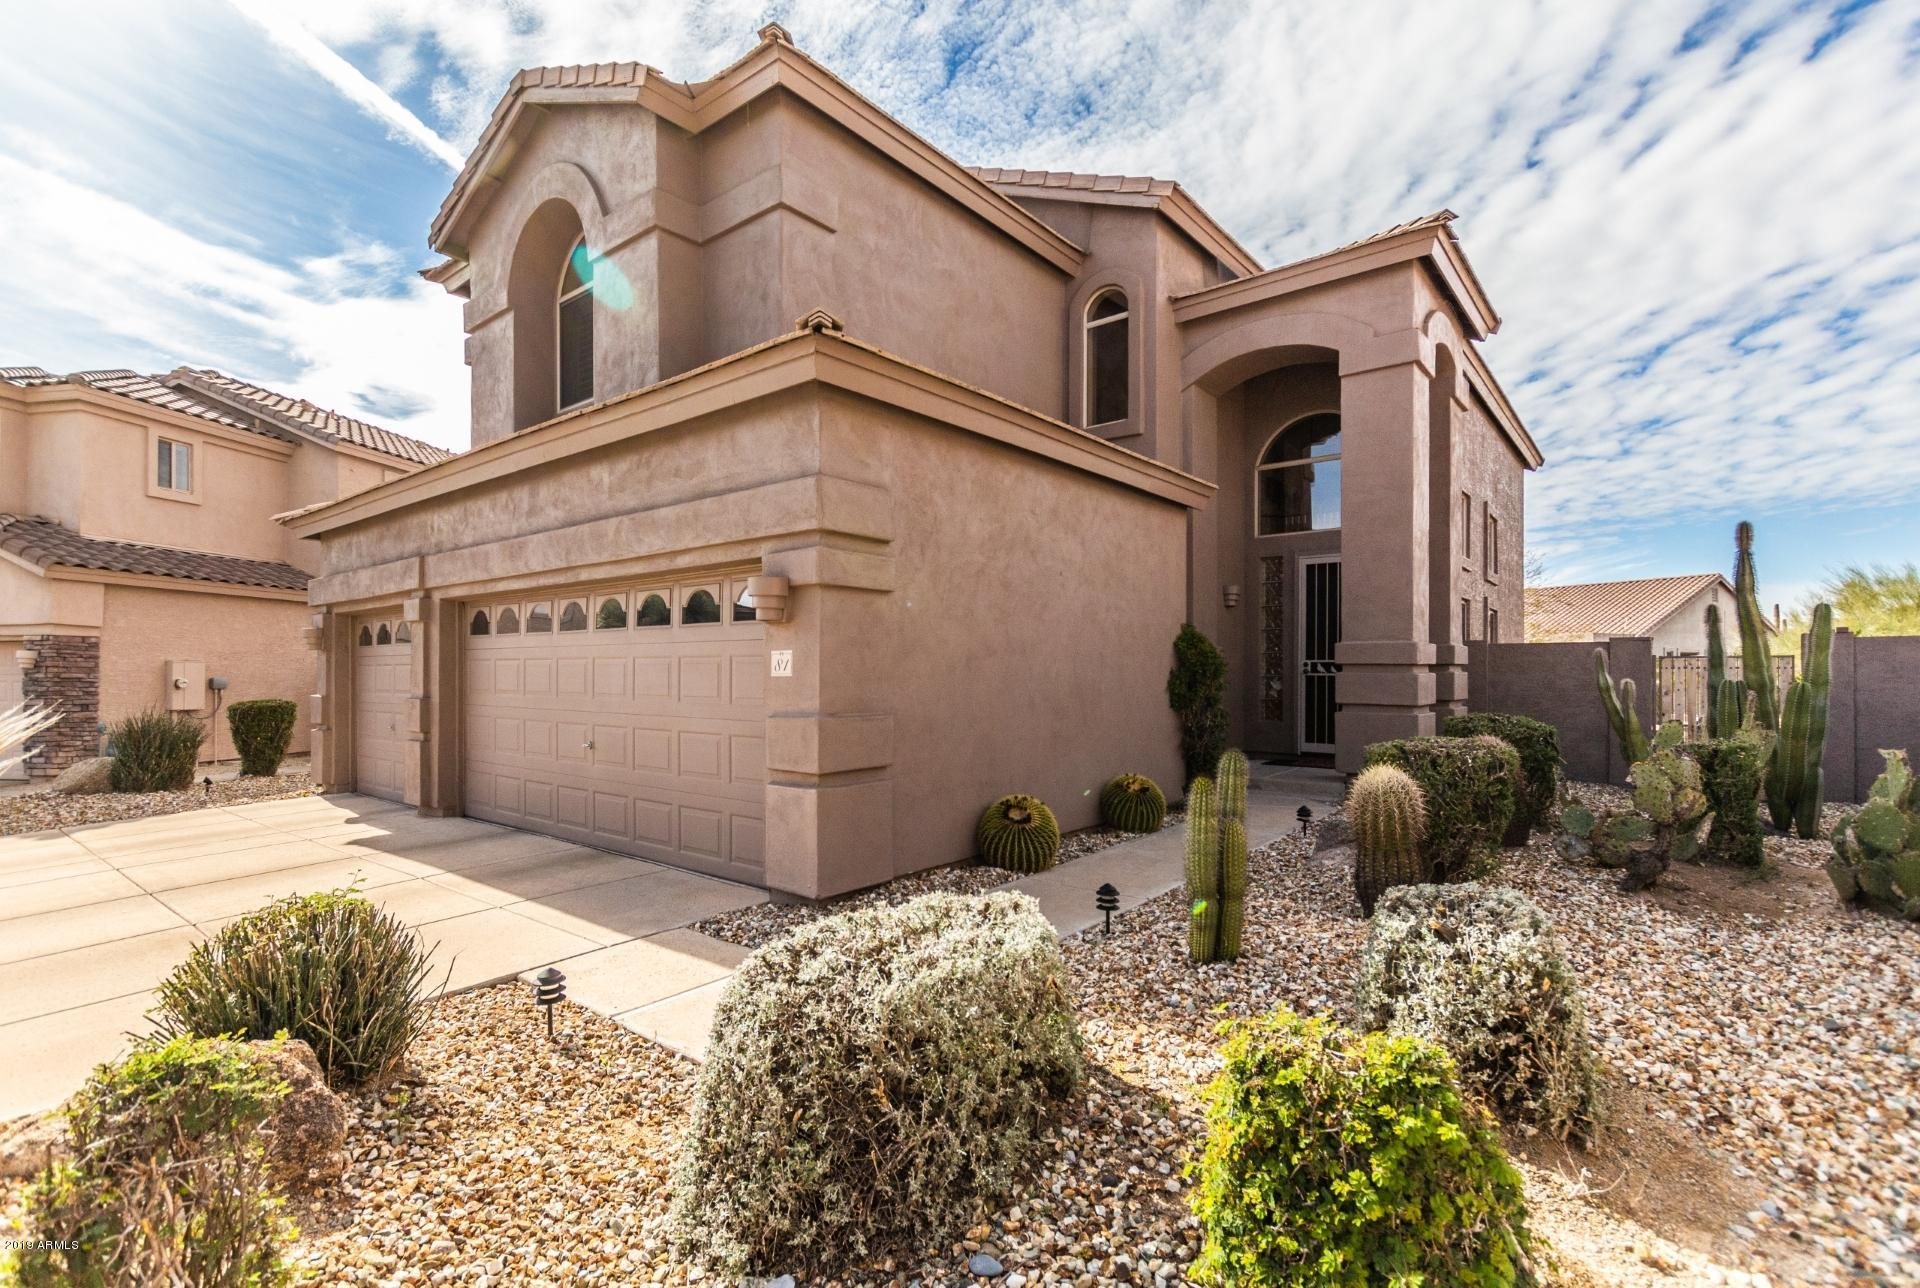 Photo of 3055 N RED MOUNTAIN -- #81, Mesa, AZ 85207